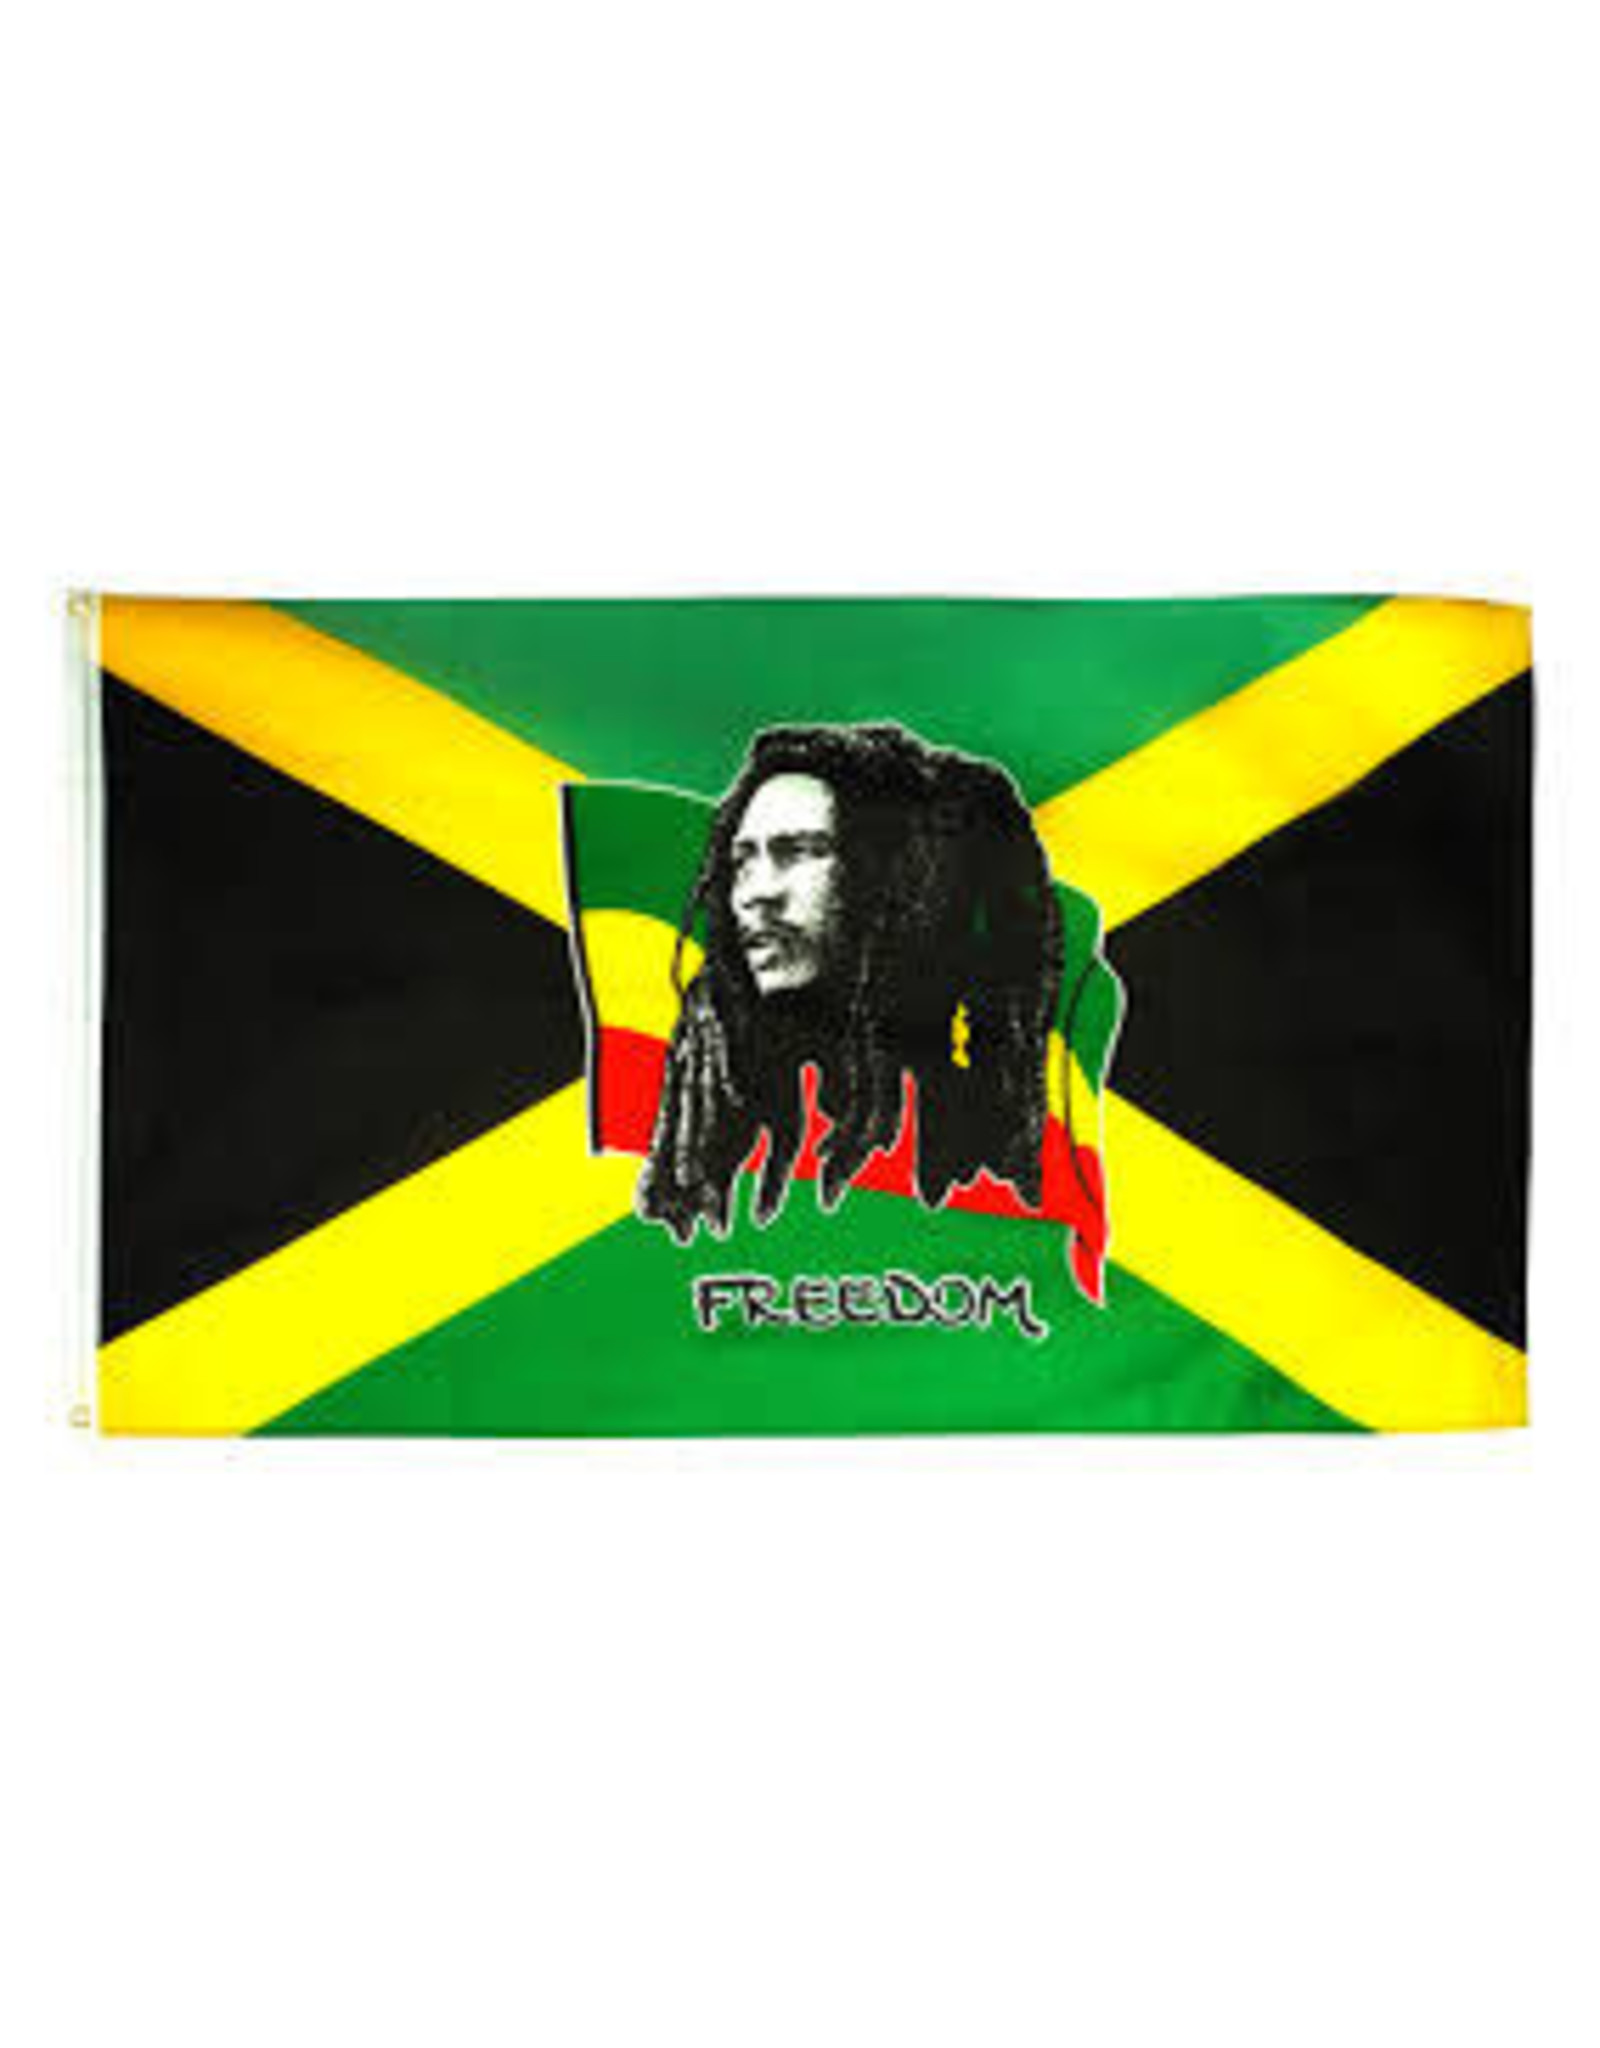 BOB MARLEY FREEDOM FLAG